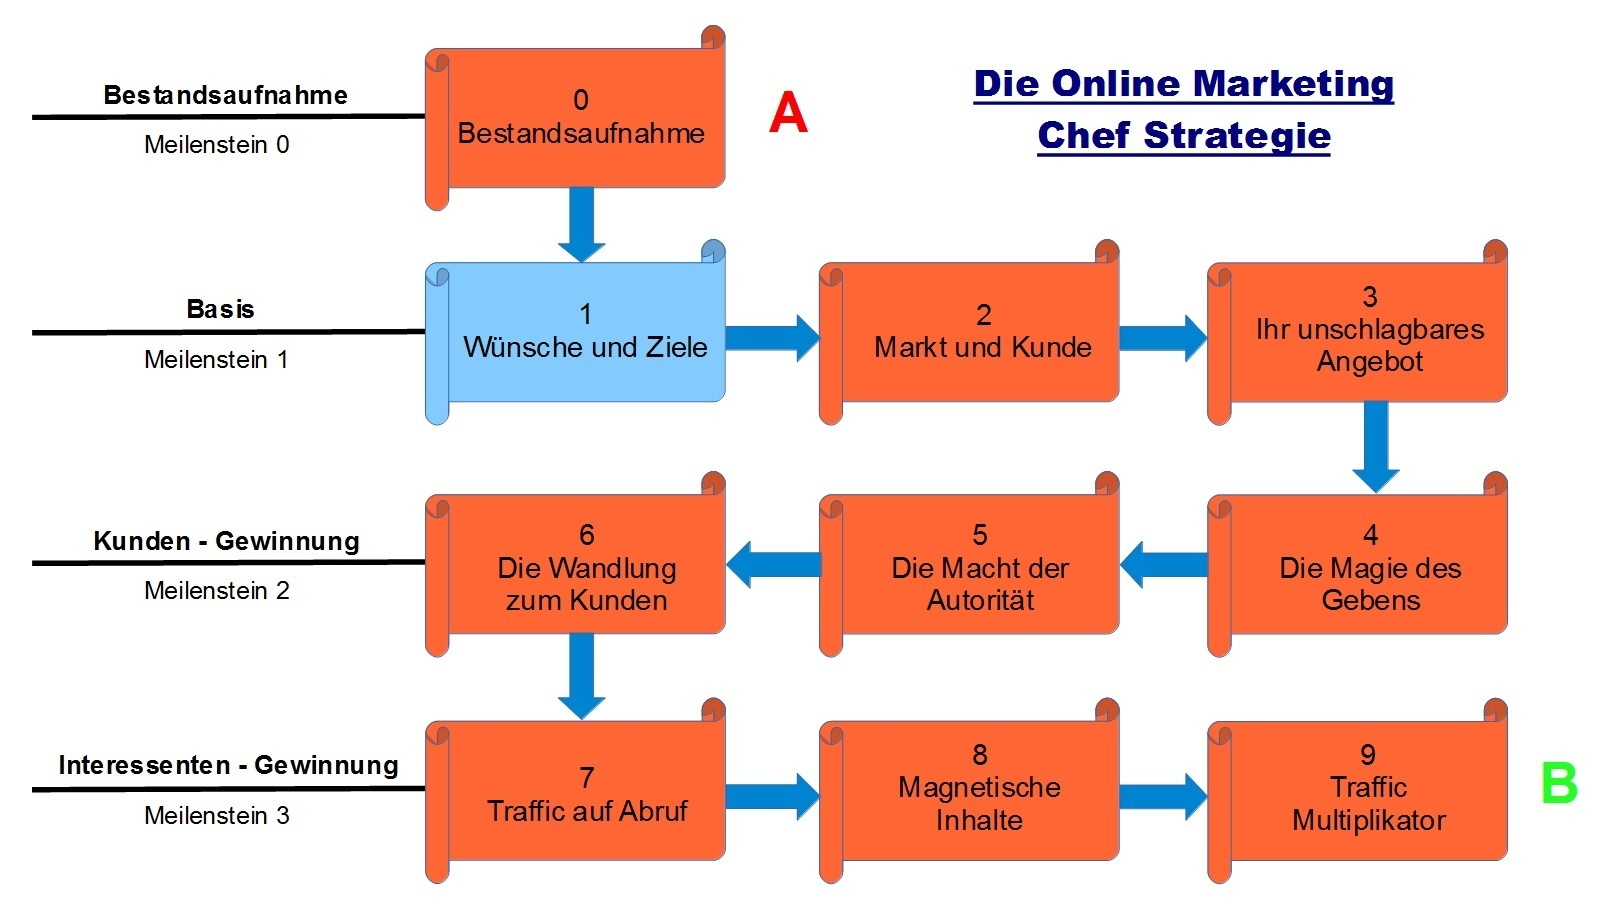 Schritt 1 Die Online Marketing Chef Strategie